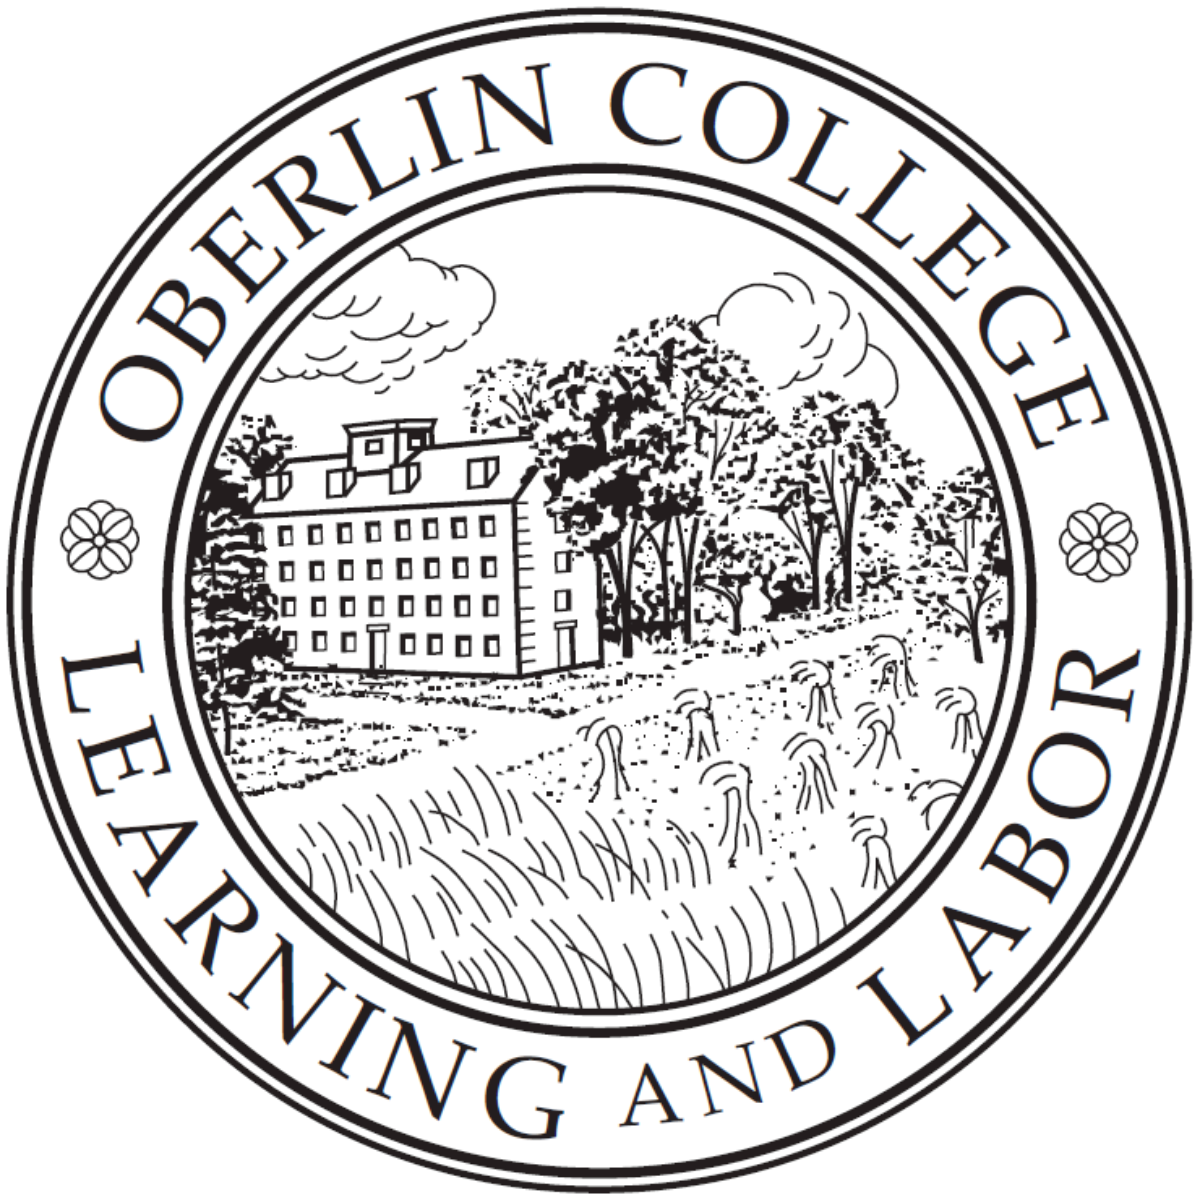 Oberlin College seal and motto